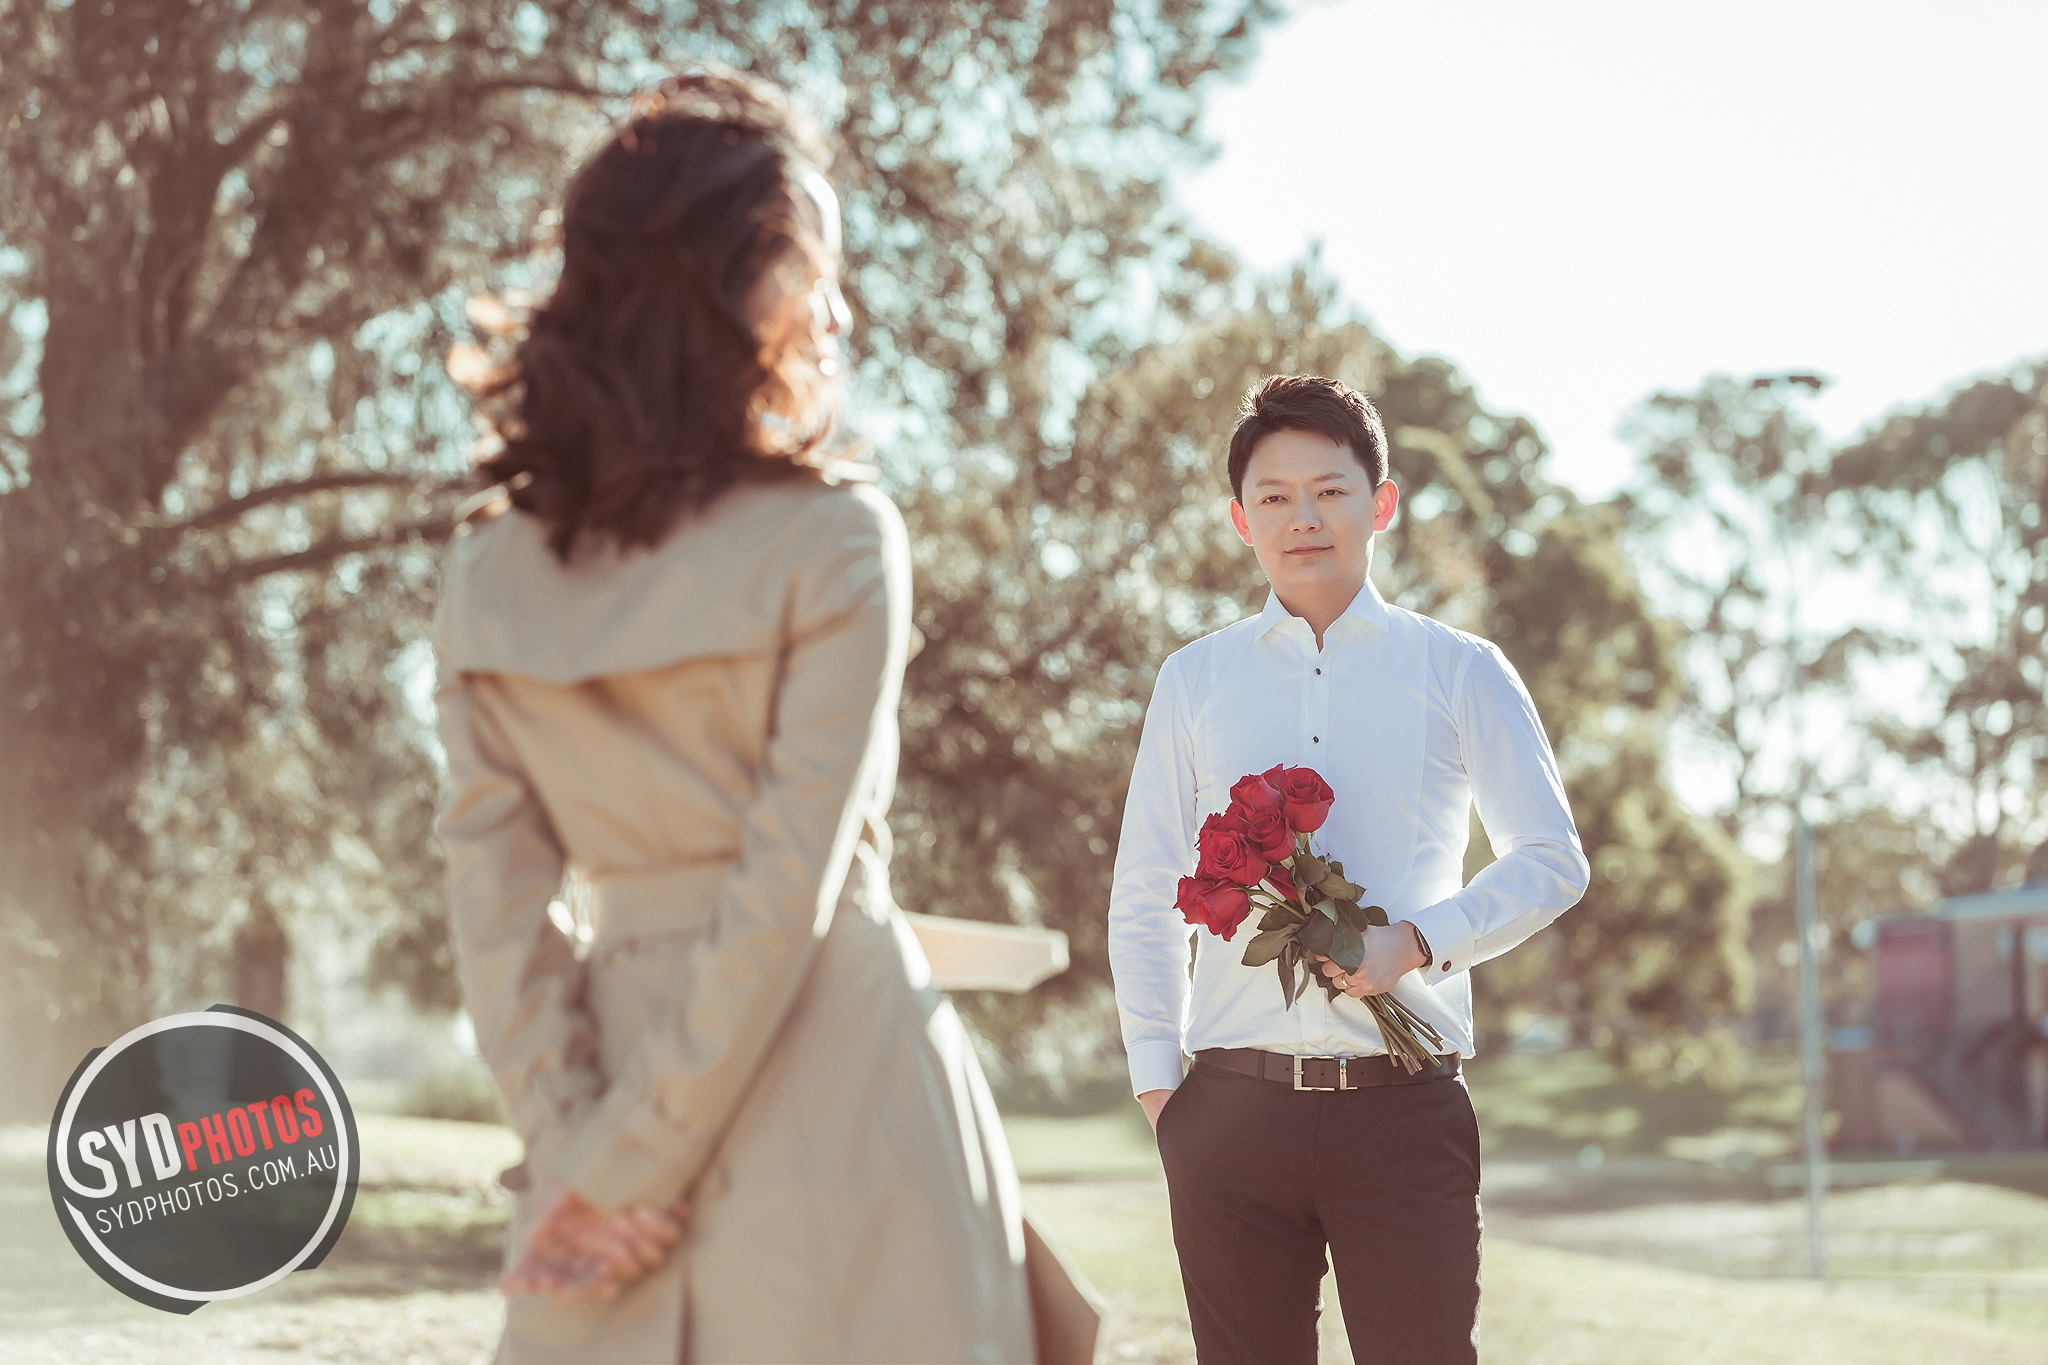 ID-103903-20180815-wedding-Hui-dylan-255.jpg, By Photographer Prewedding, Created on 26 Oct 2018, SYDPHOTOS Photography all rights reserved.